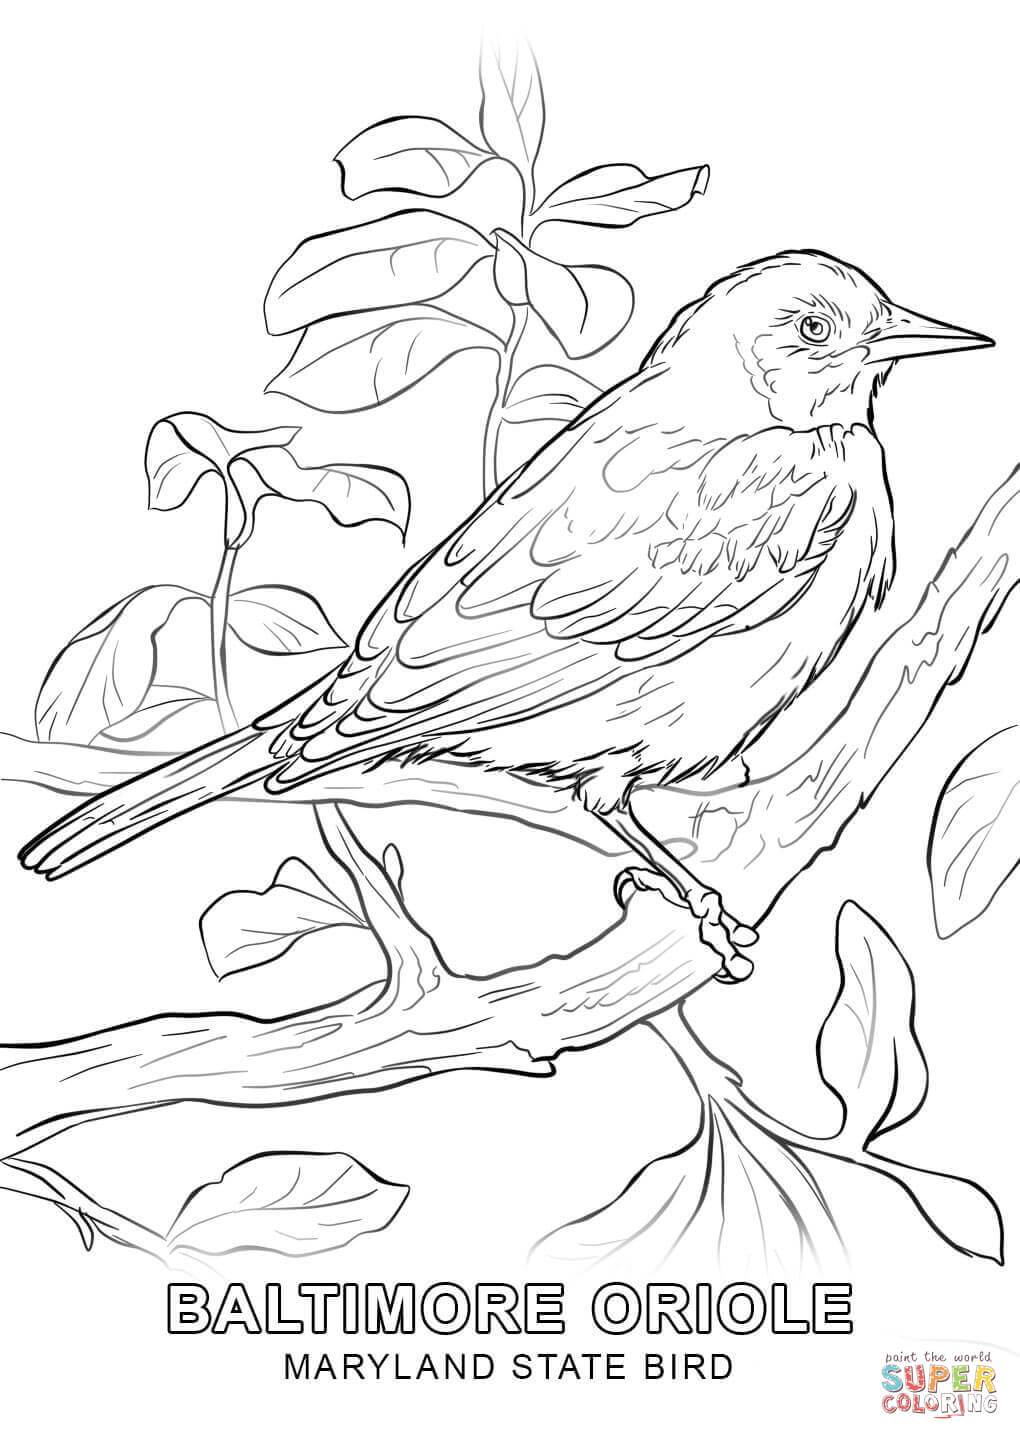 maryland state flower maryland state bird coloring page free printable state flower maryland